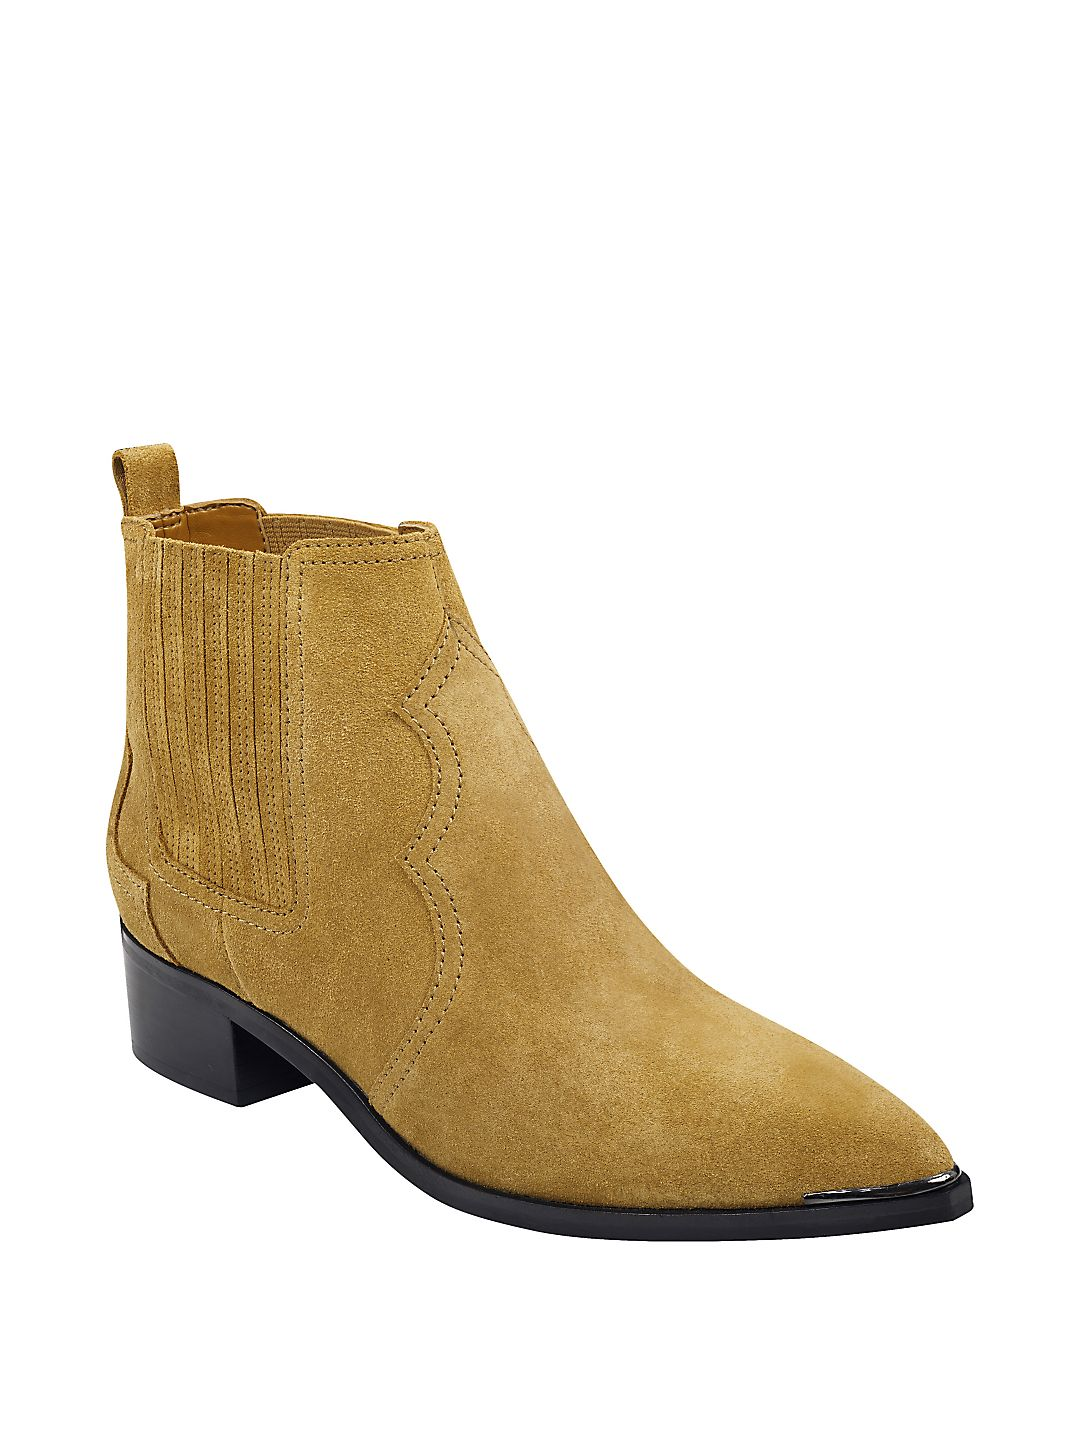 Yohani Suede Booties